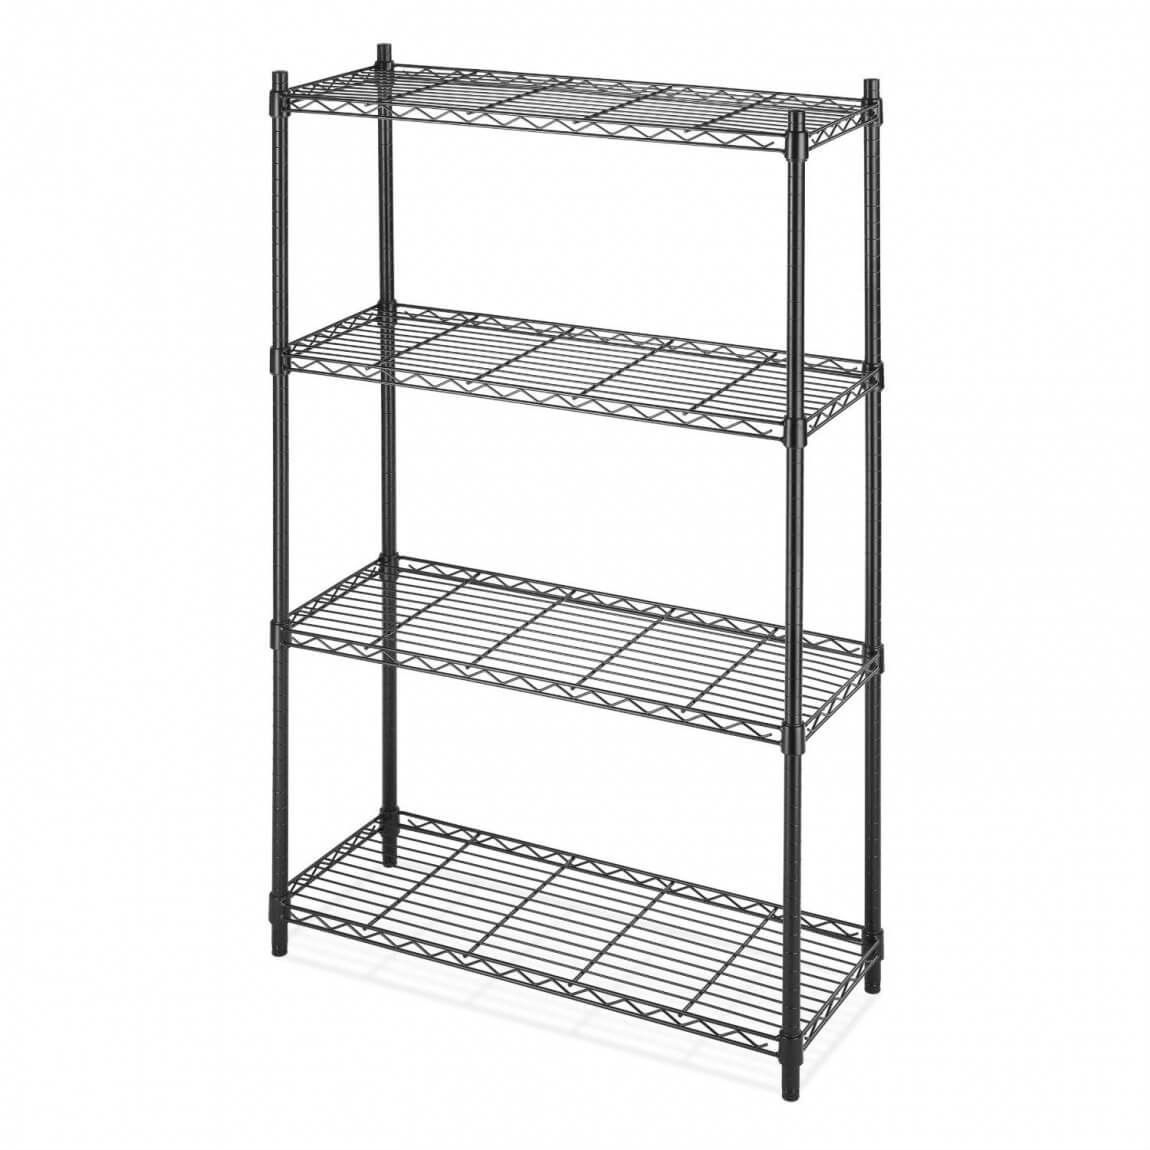 Metal Shelving 4 Shelf Black Metal Wire Shelving Unit